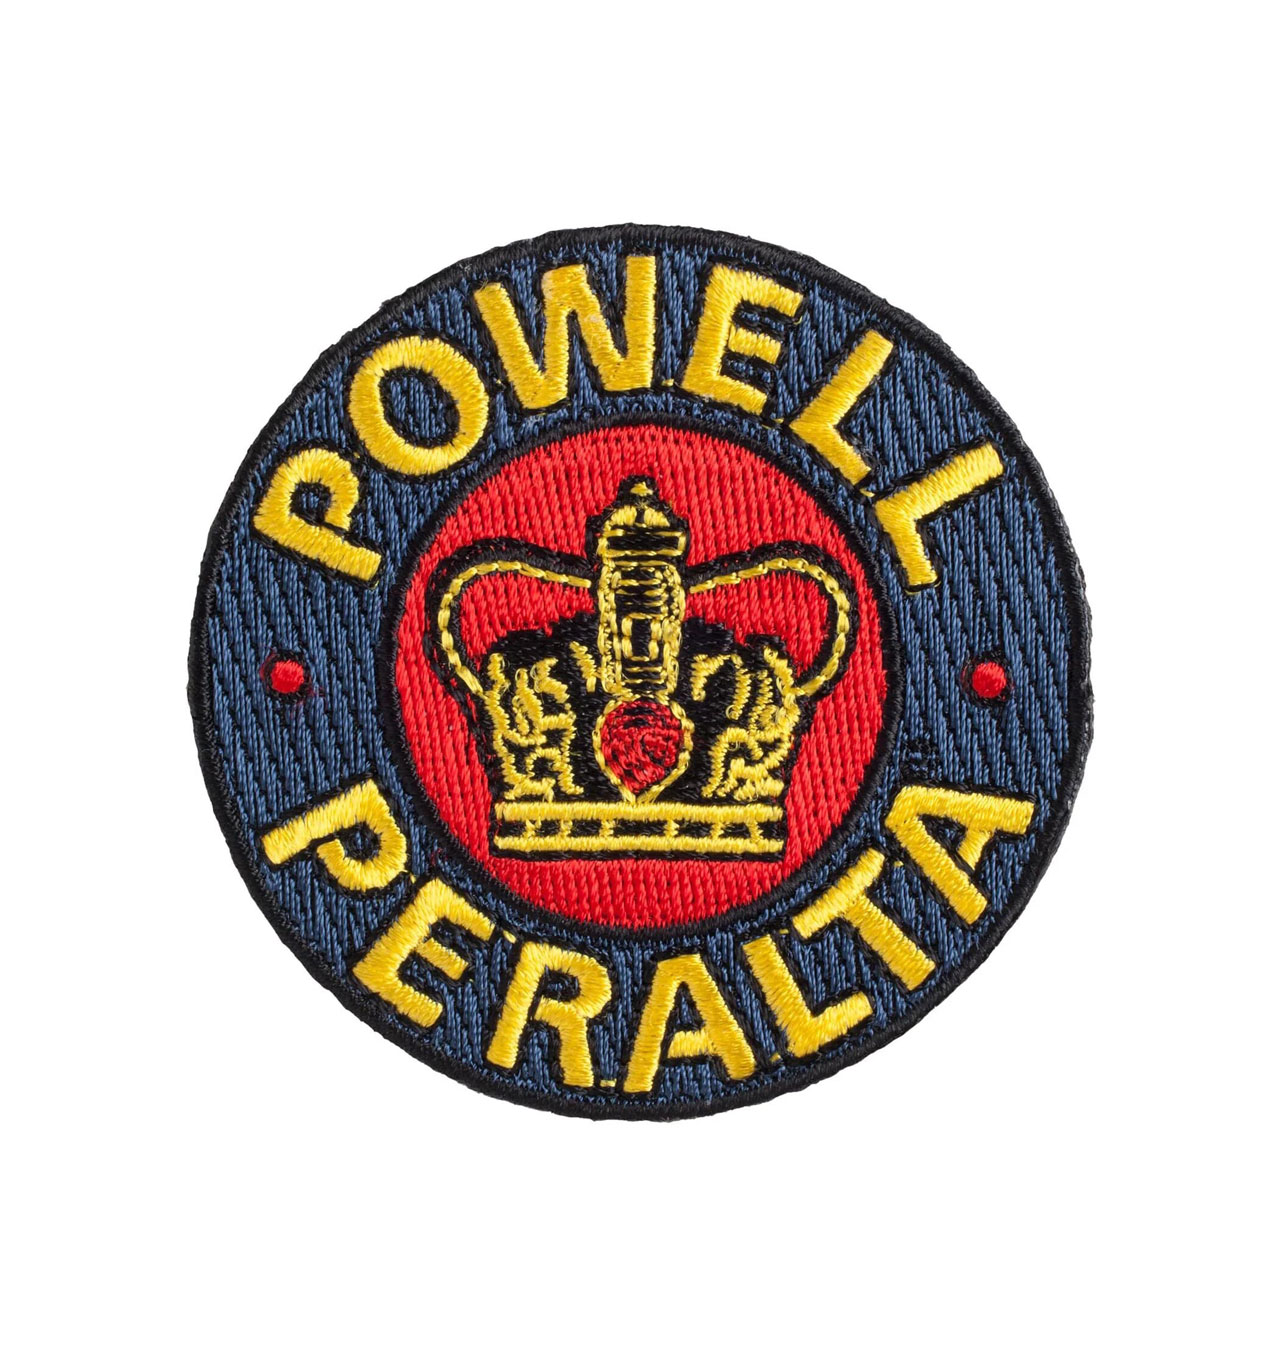 Powell Peralta - Supreme Skateboard 2.5 Patch